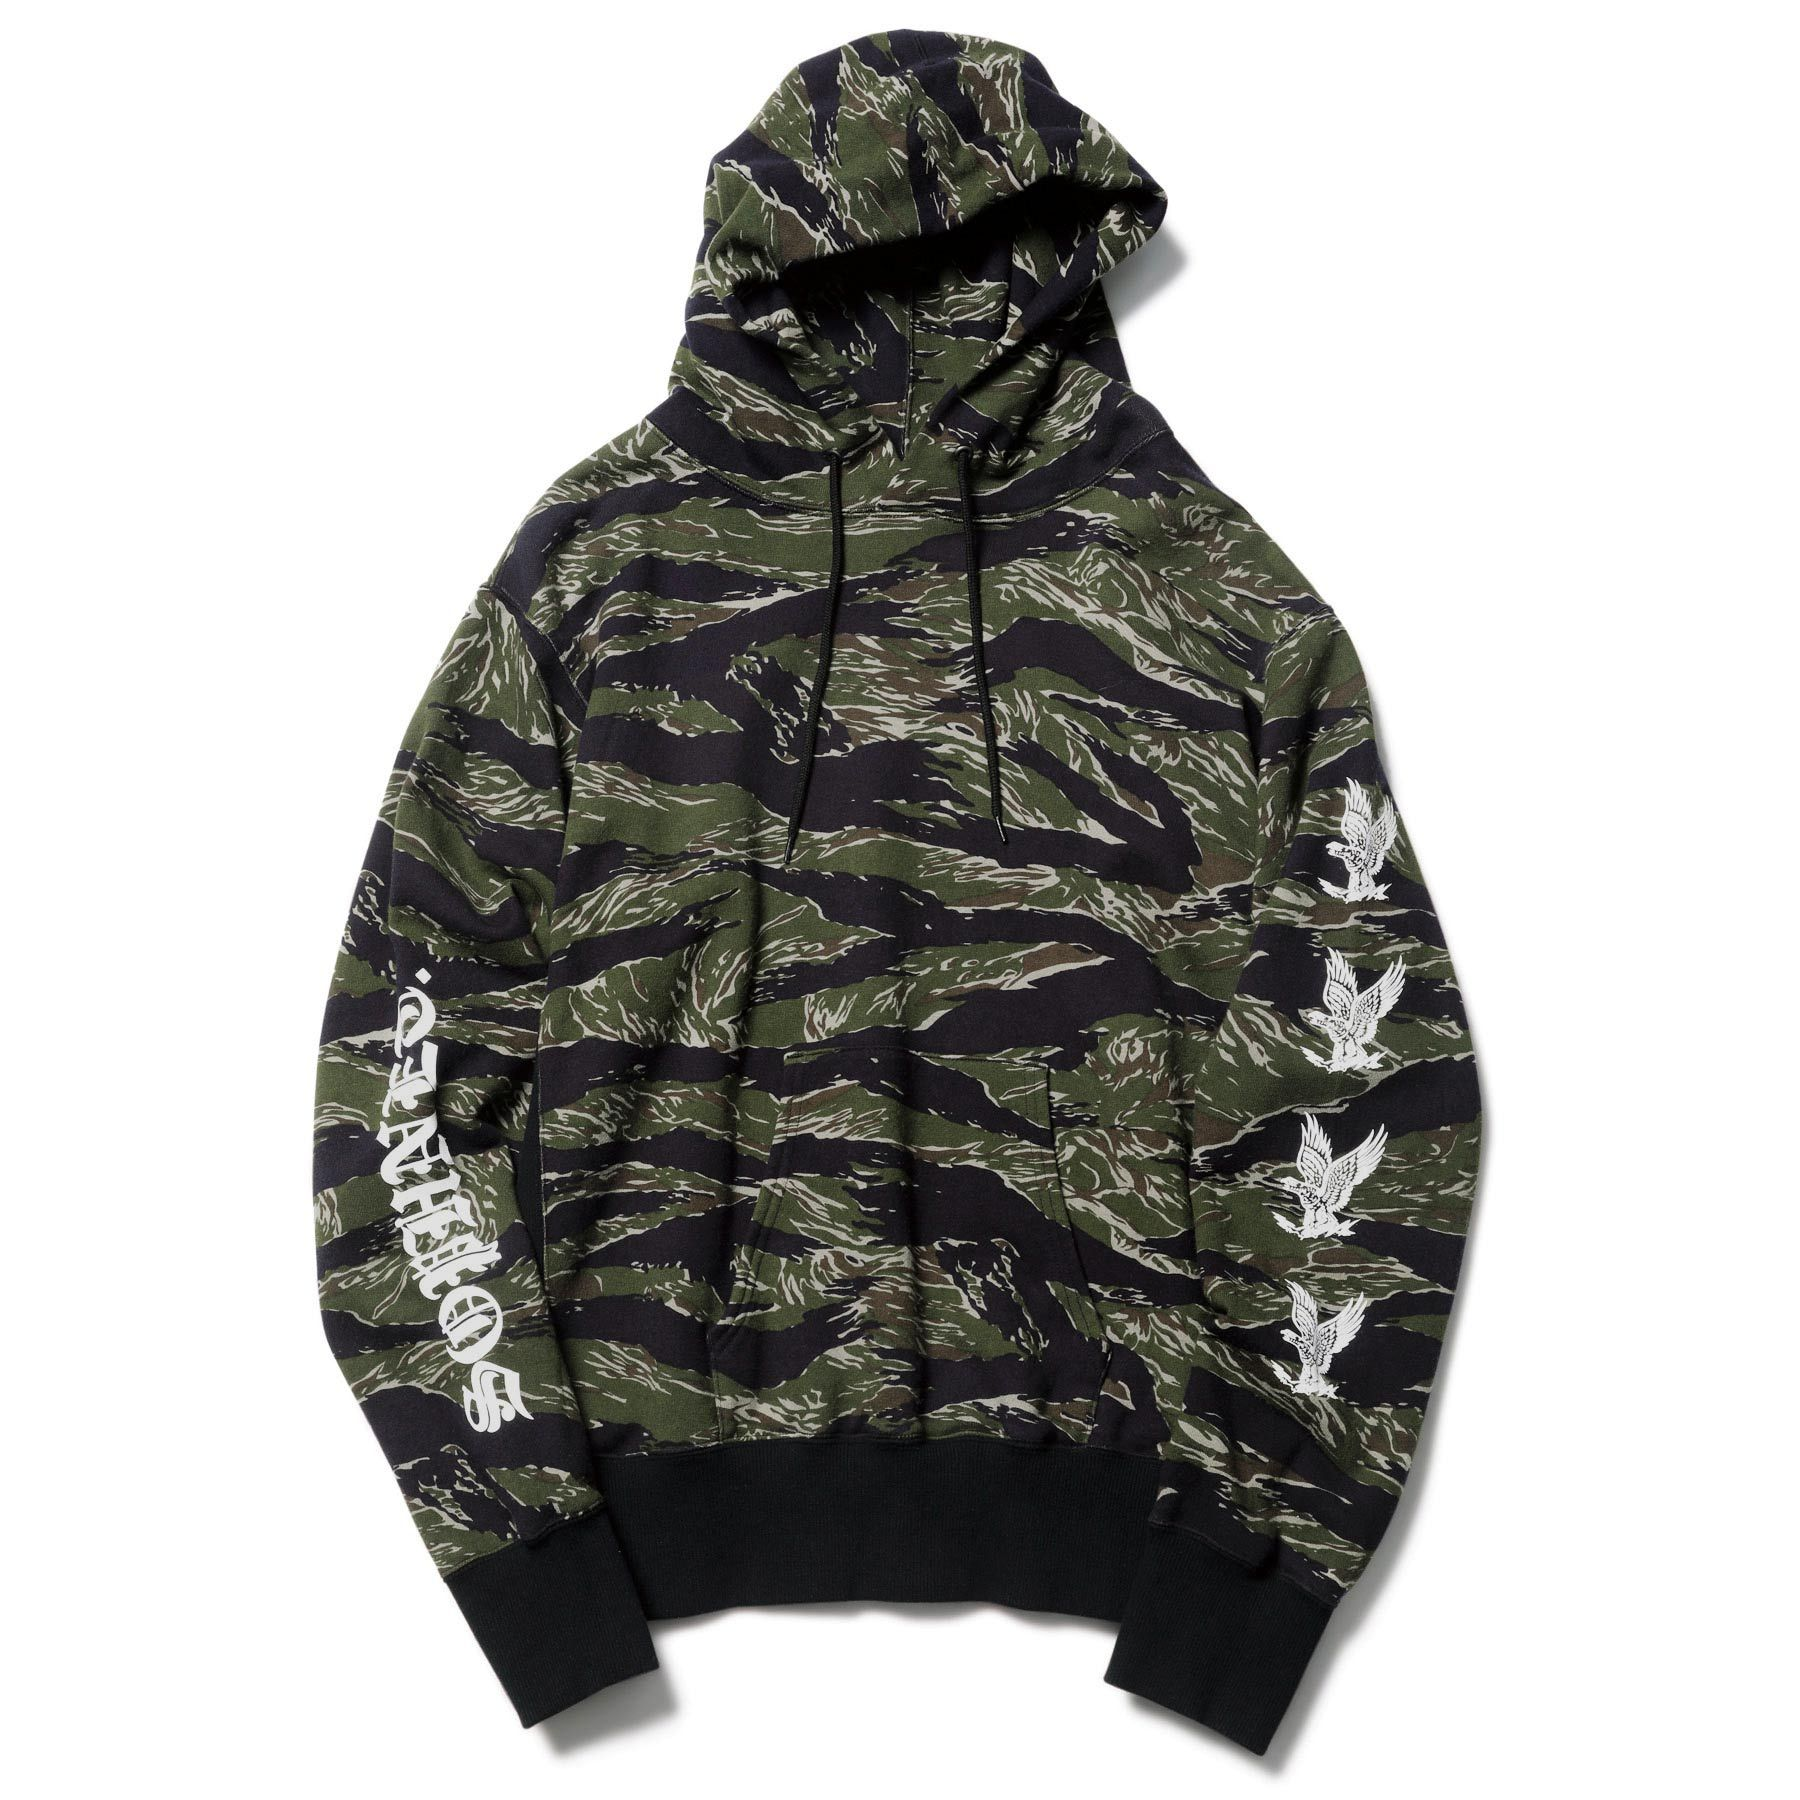 4f34688fc7 EAGLE STAR PULL OVER SWEAT HOODY(M CAMOUFLAGE)